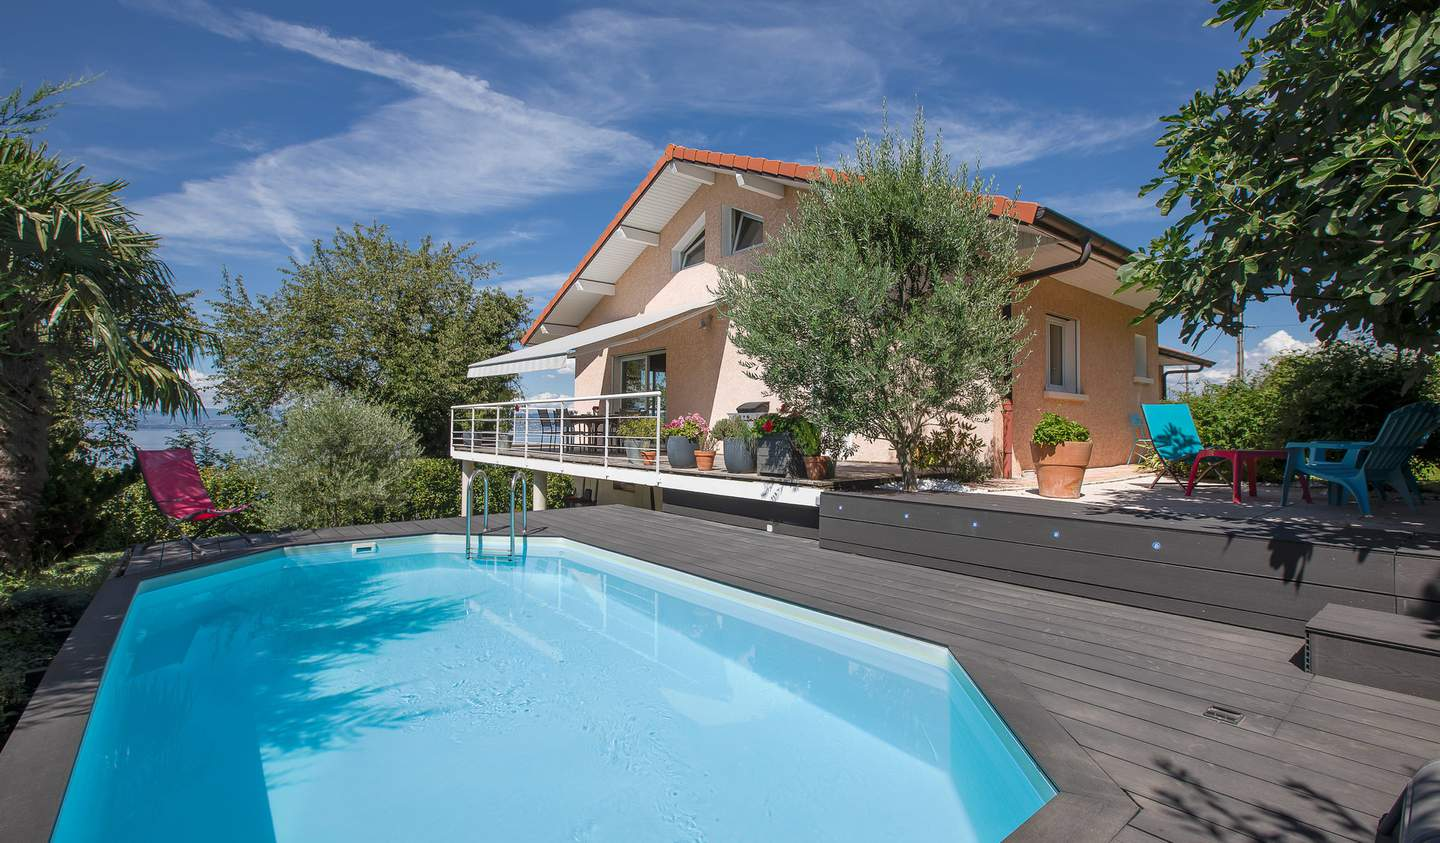 House with pool Lugrin